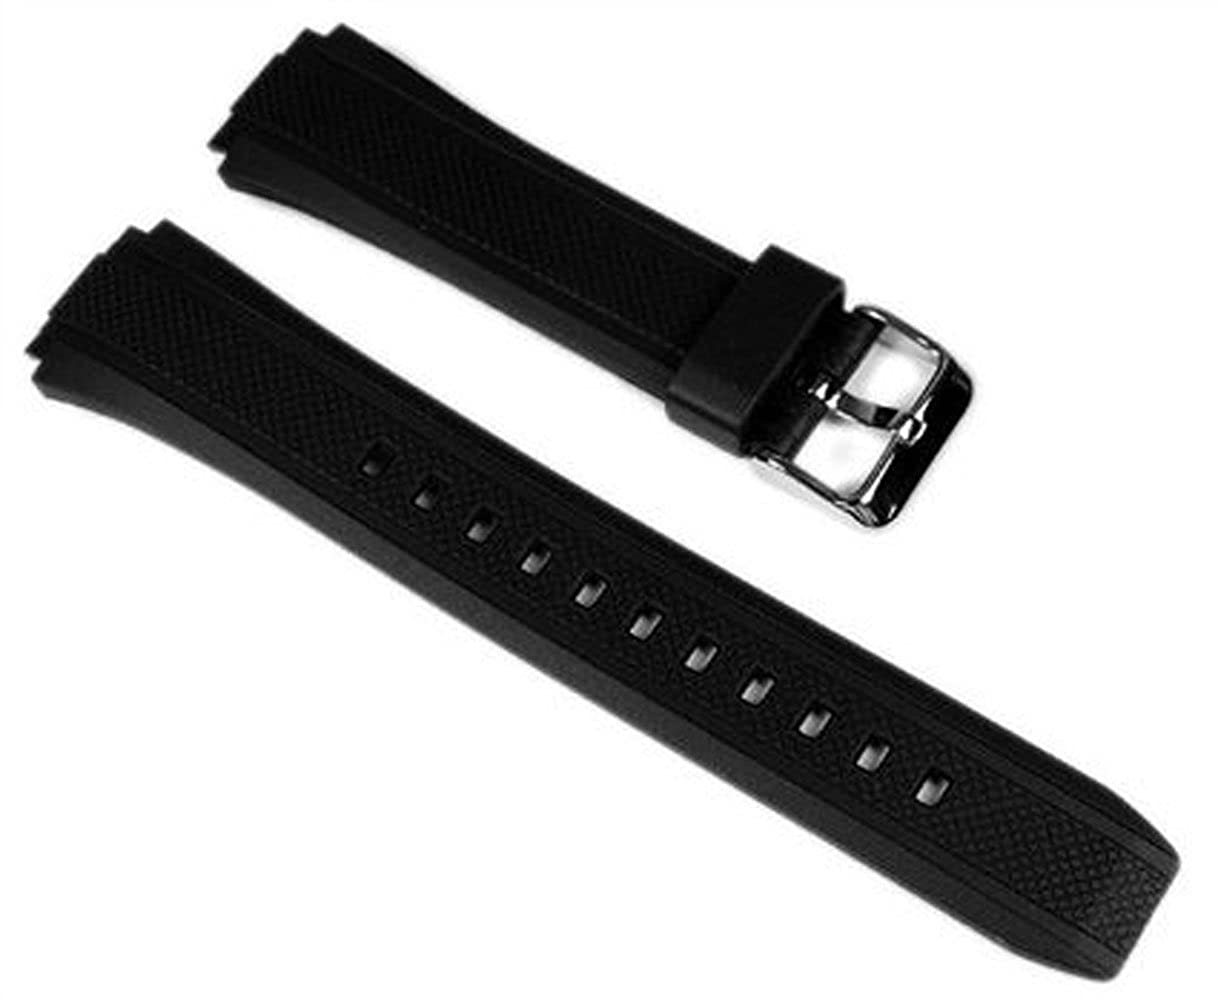 c5c5000a0d9c Amazon.com  Casio 10357533 Genuine Factory Replacement Resin Watch Band  fits EF-552-1AV EF-552PB-1A2V EF-552PB-1A4V  Watches